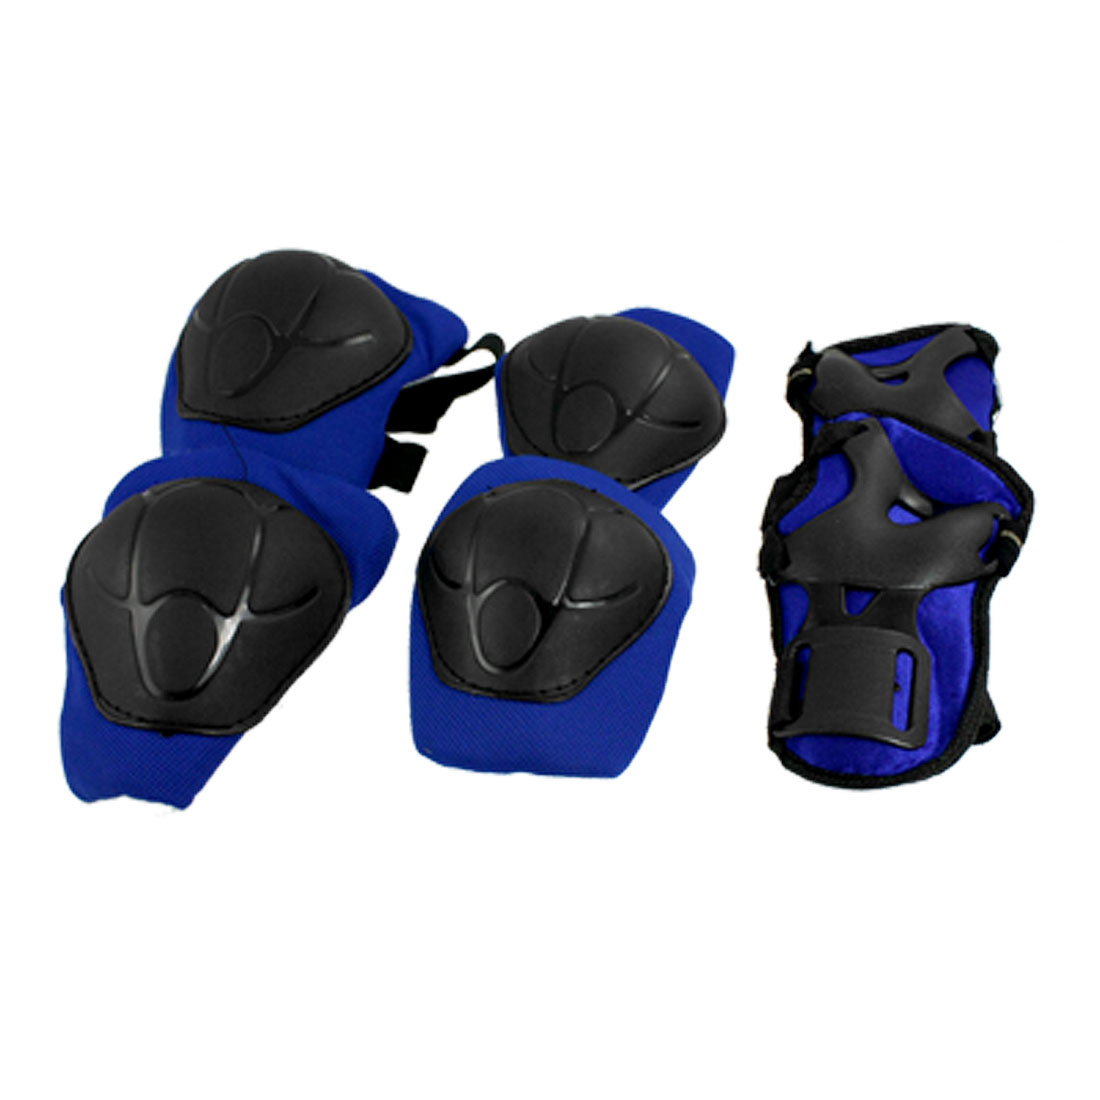 Child Skating Knee Elbow Wrist Protective Guard Pad Set Blue Black